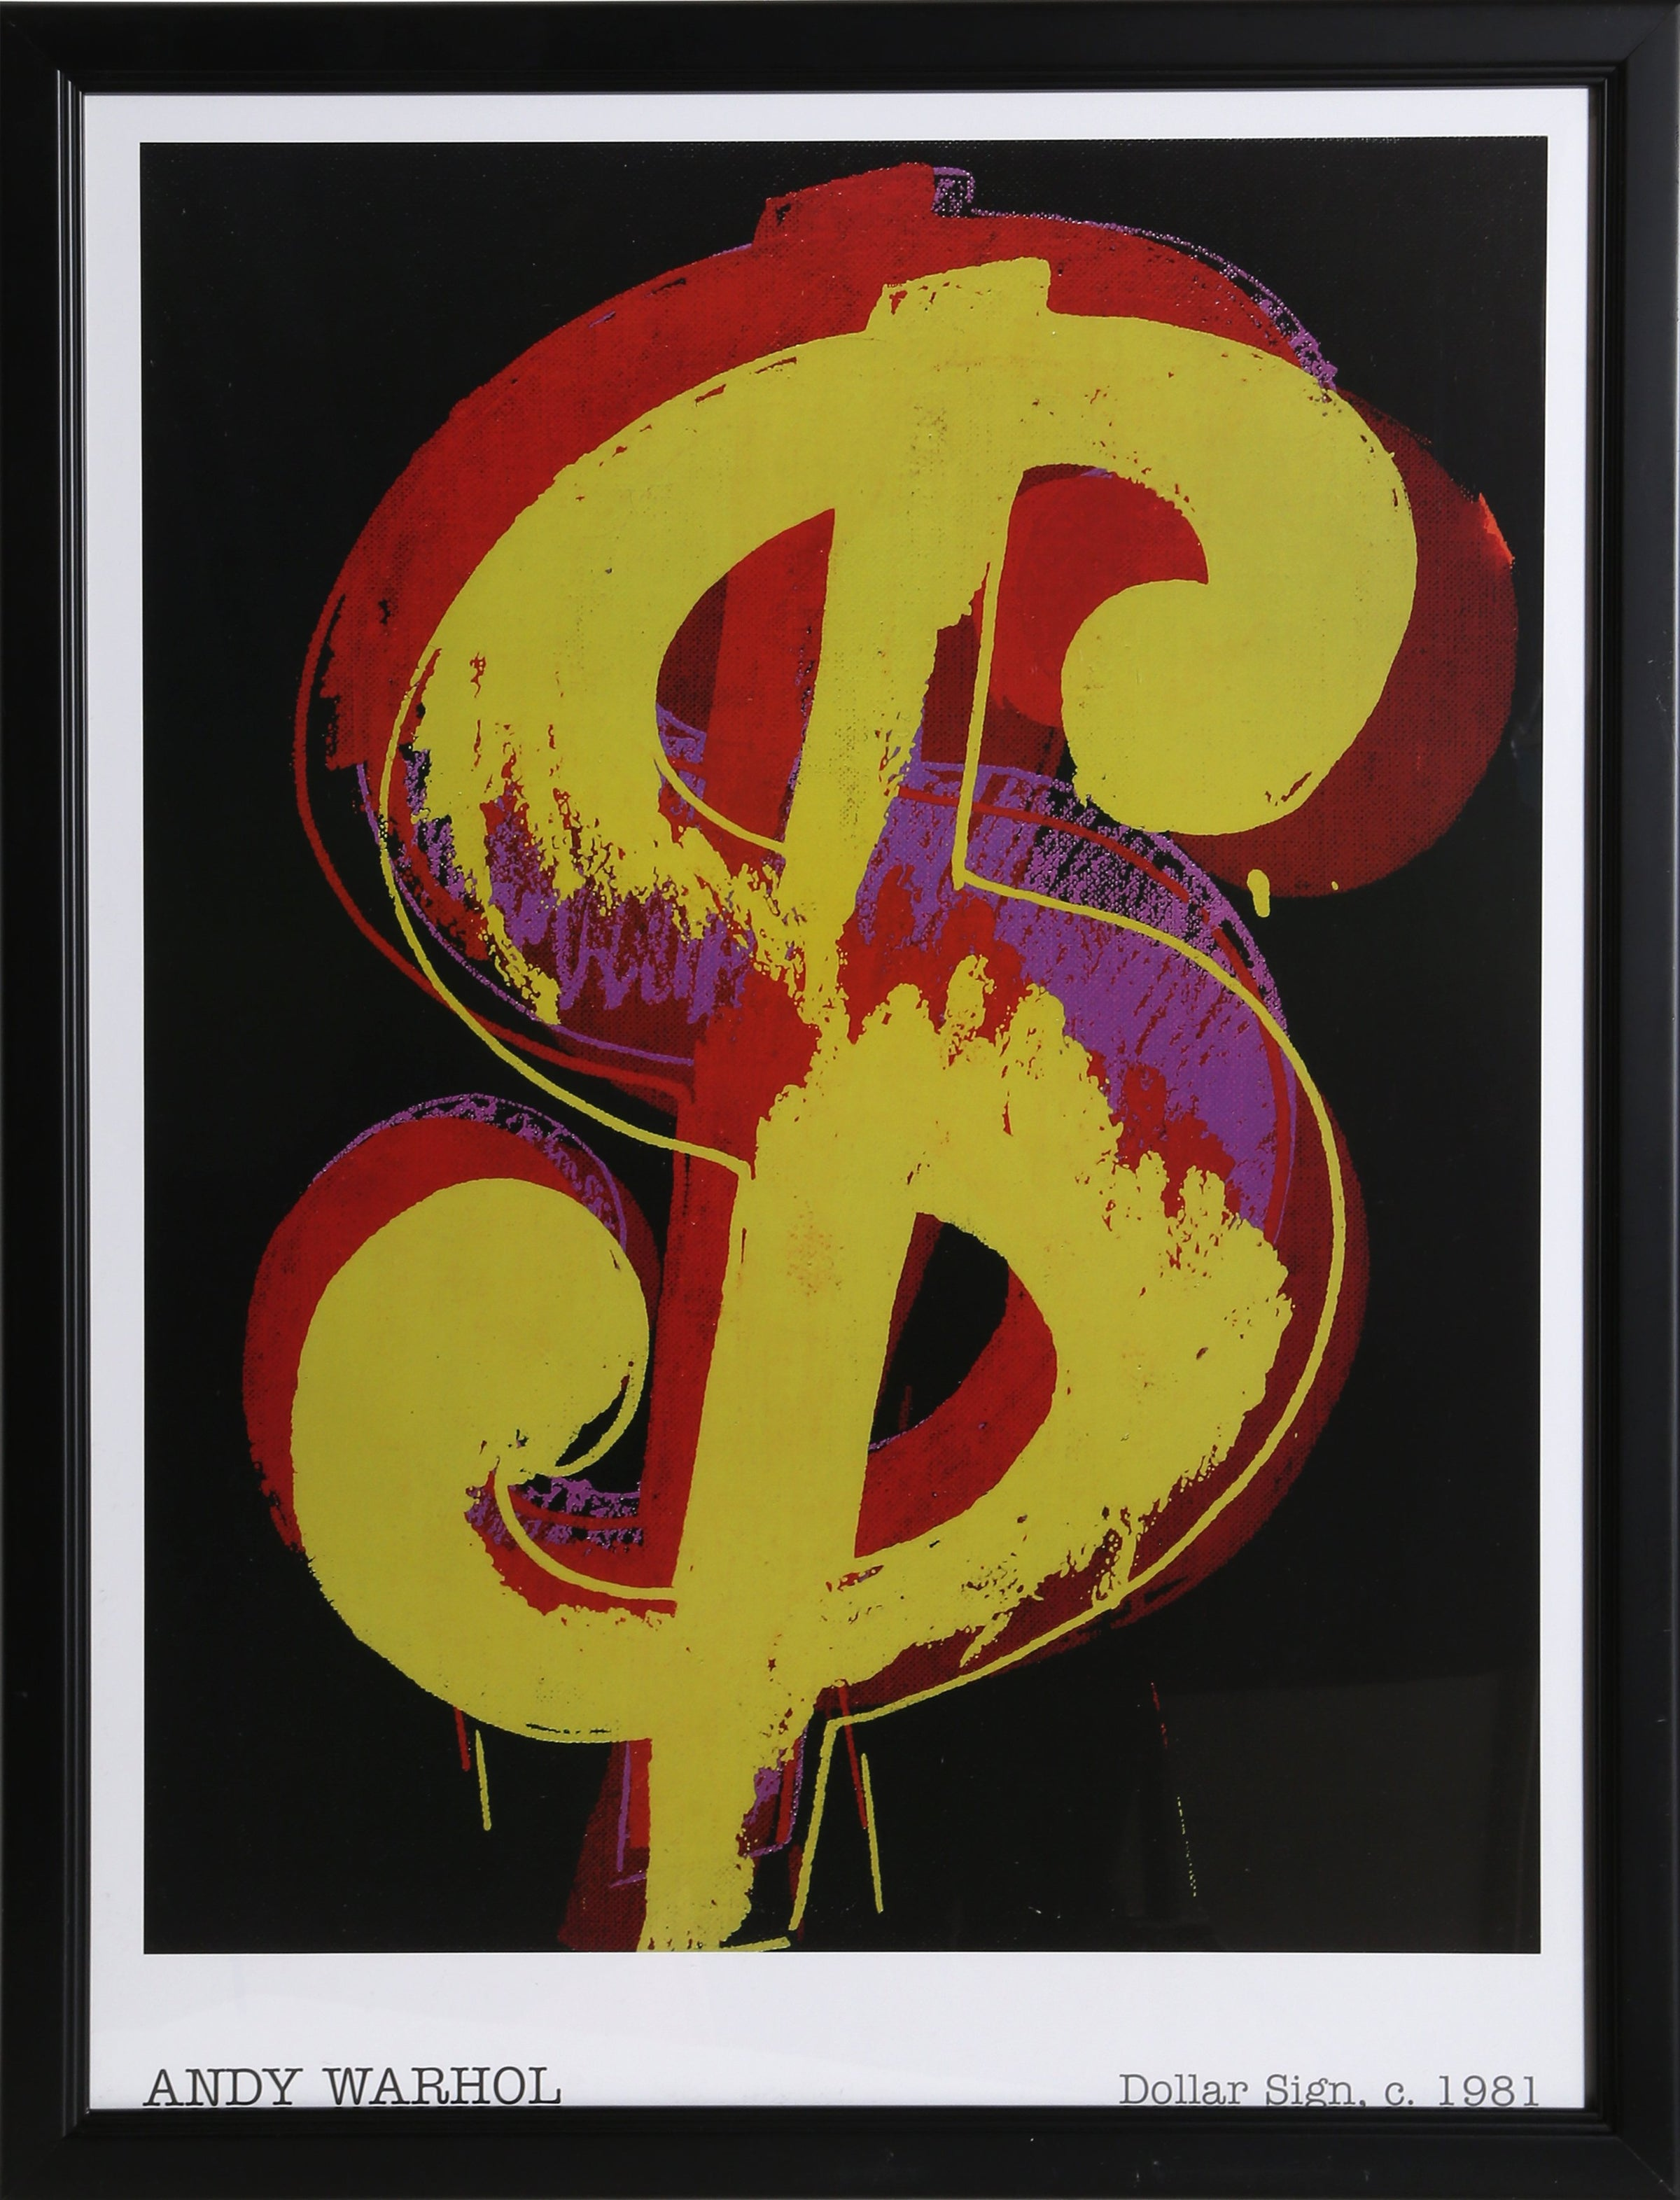 Andy Warhol, Dollar Sign Poster - RoGallery